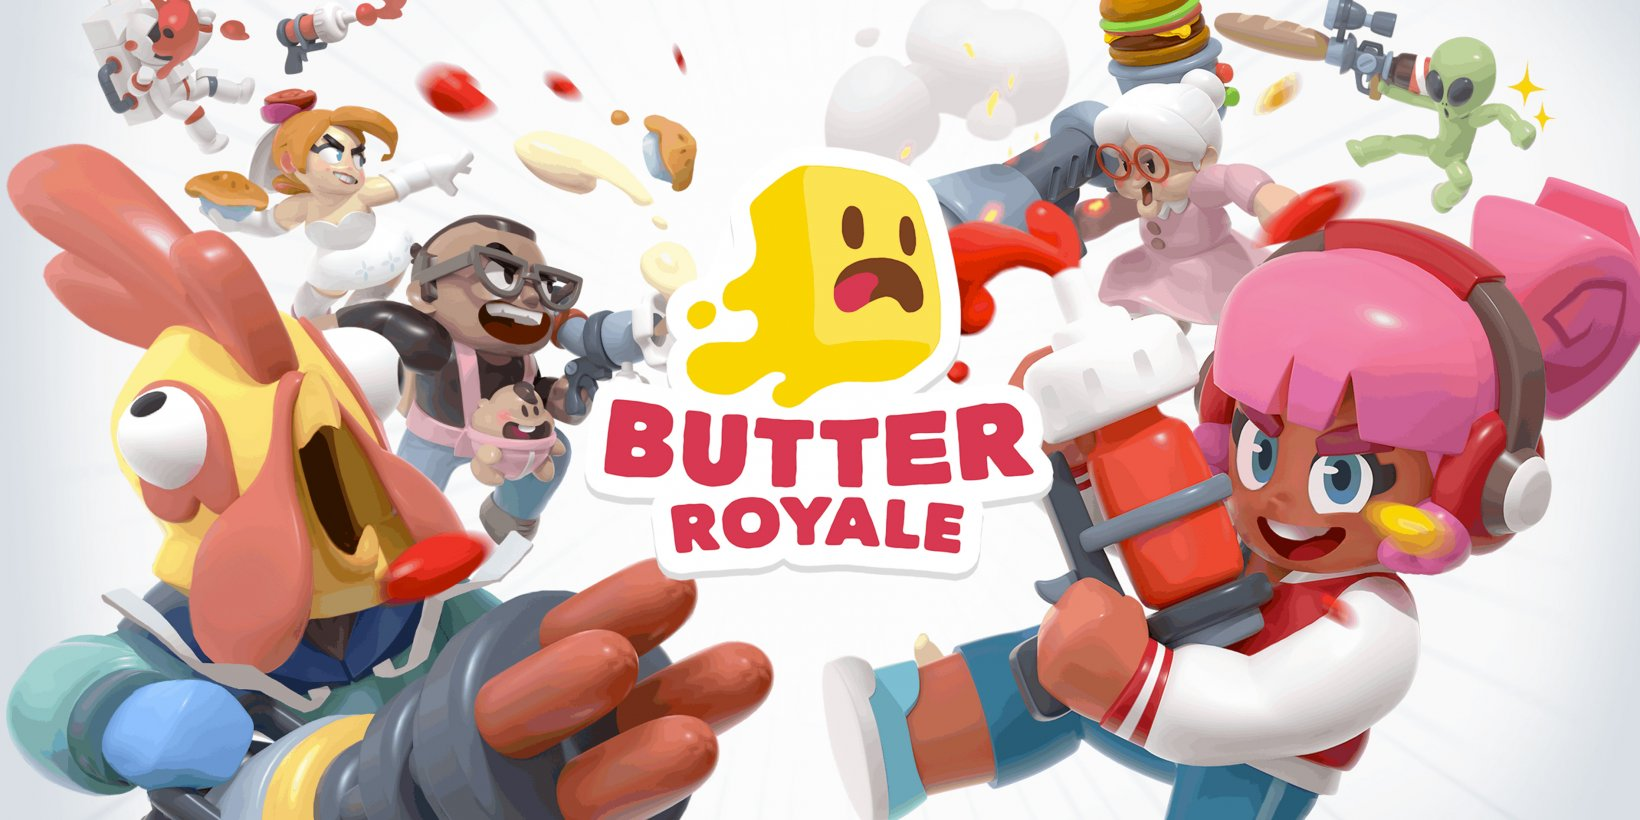 Butter Royale's Candy Cane Season update brings new festive skins and a new powerup to the cute food shooter